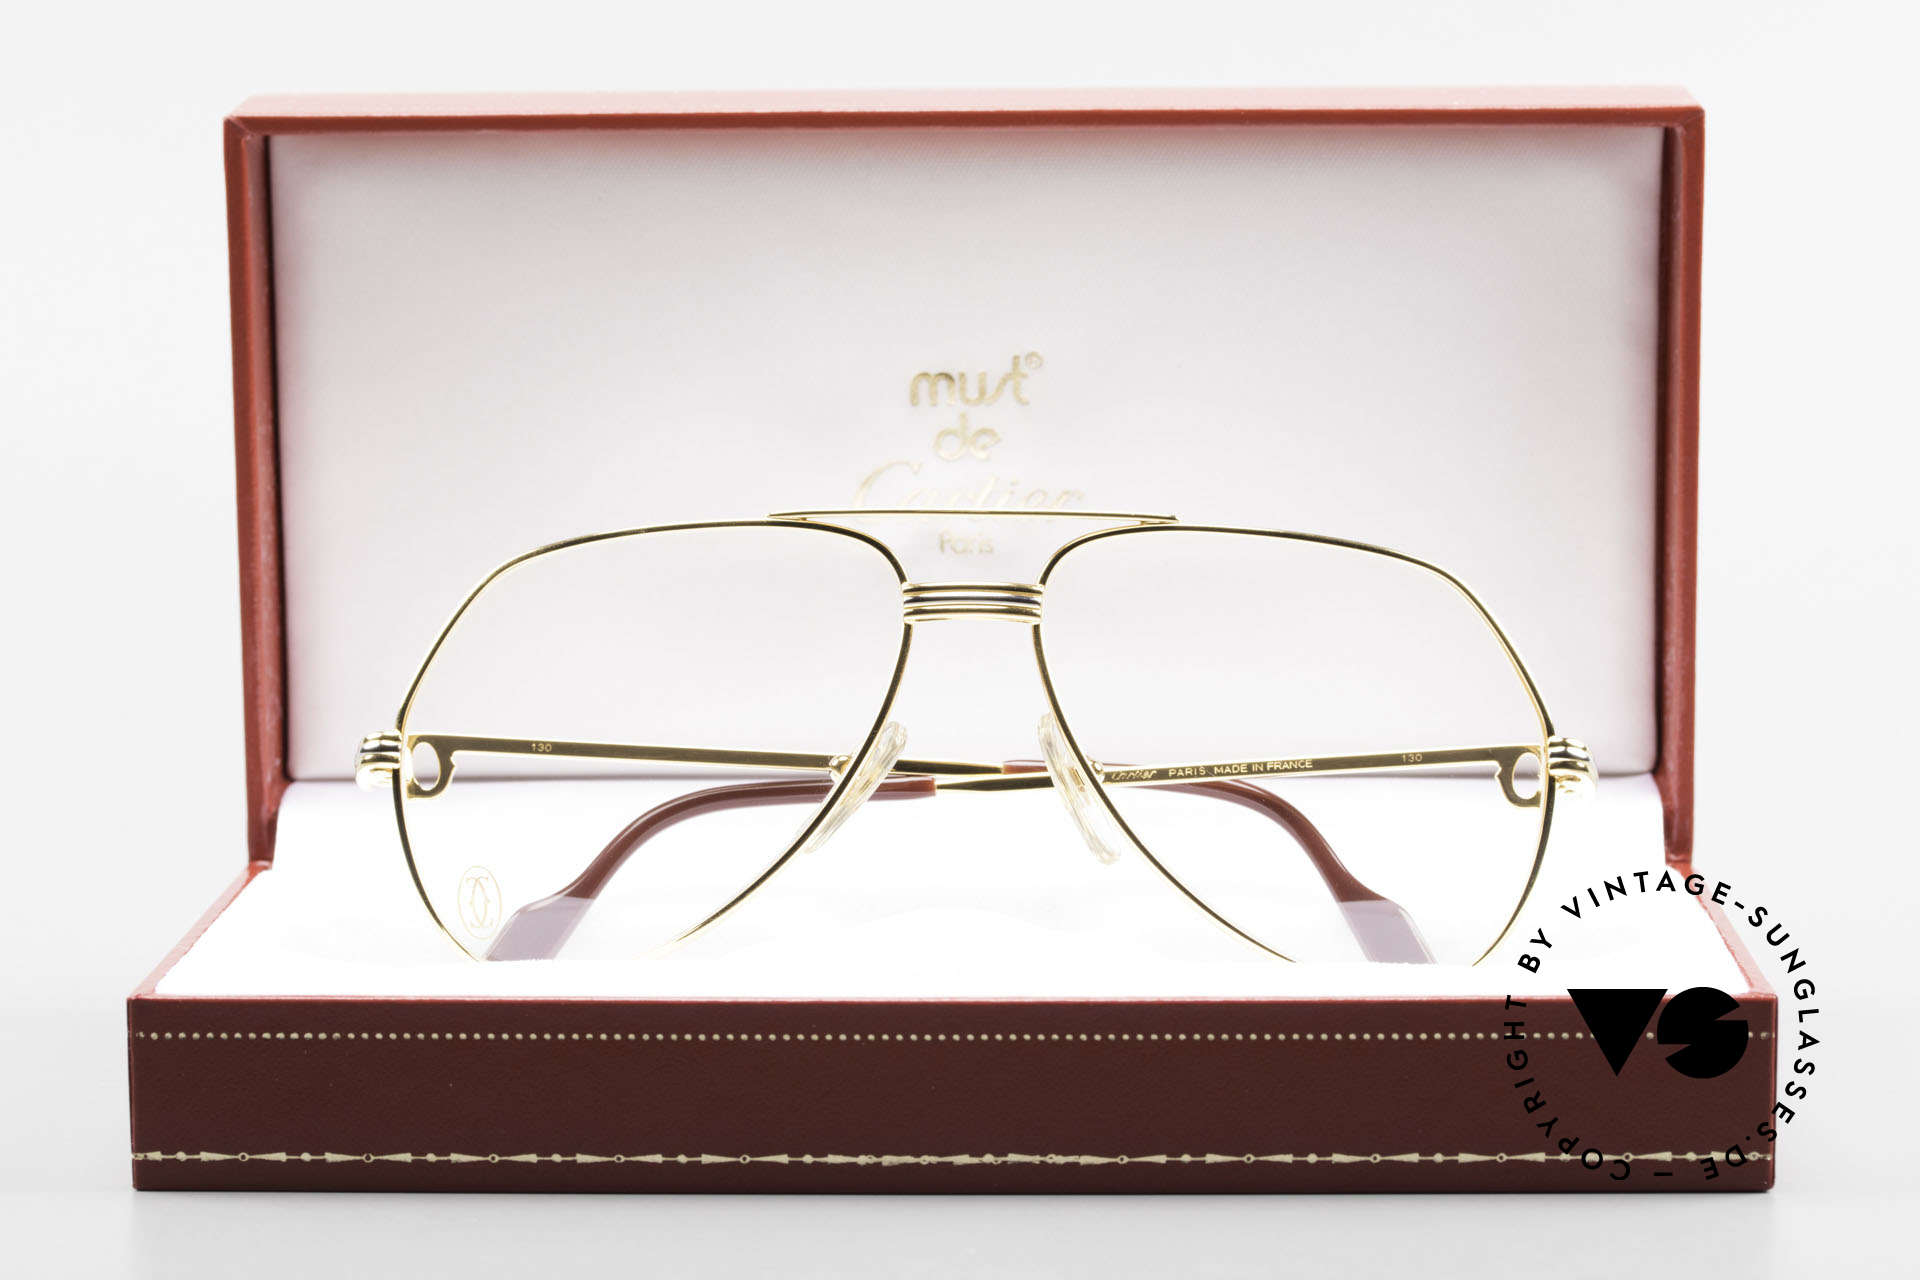 Cartier Vendome LC - S David Bowie 80's Vintage Frame, Size: medium, Made for Men and Women